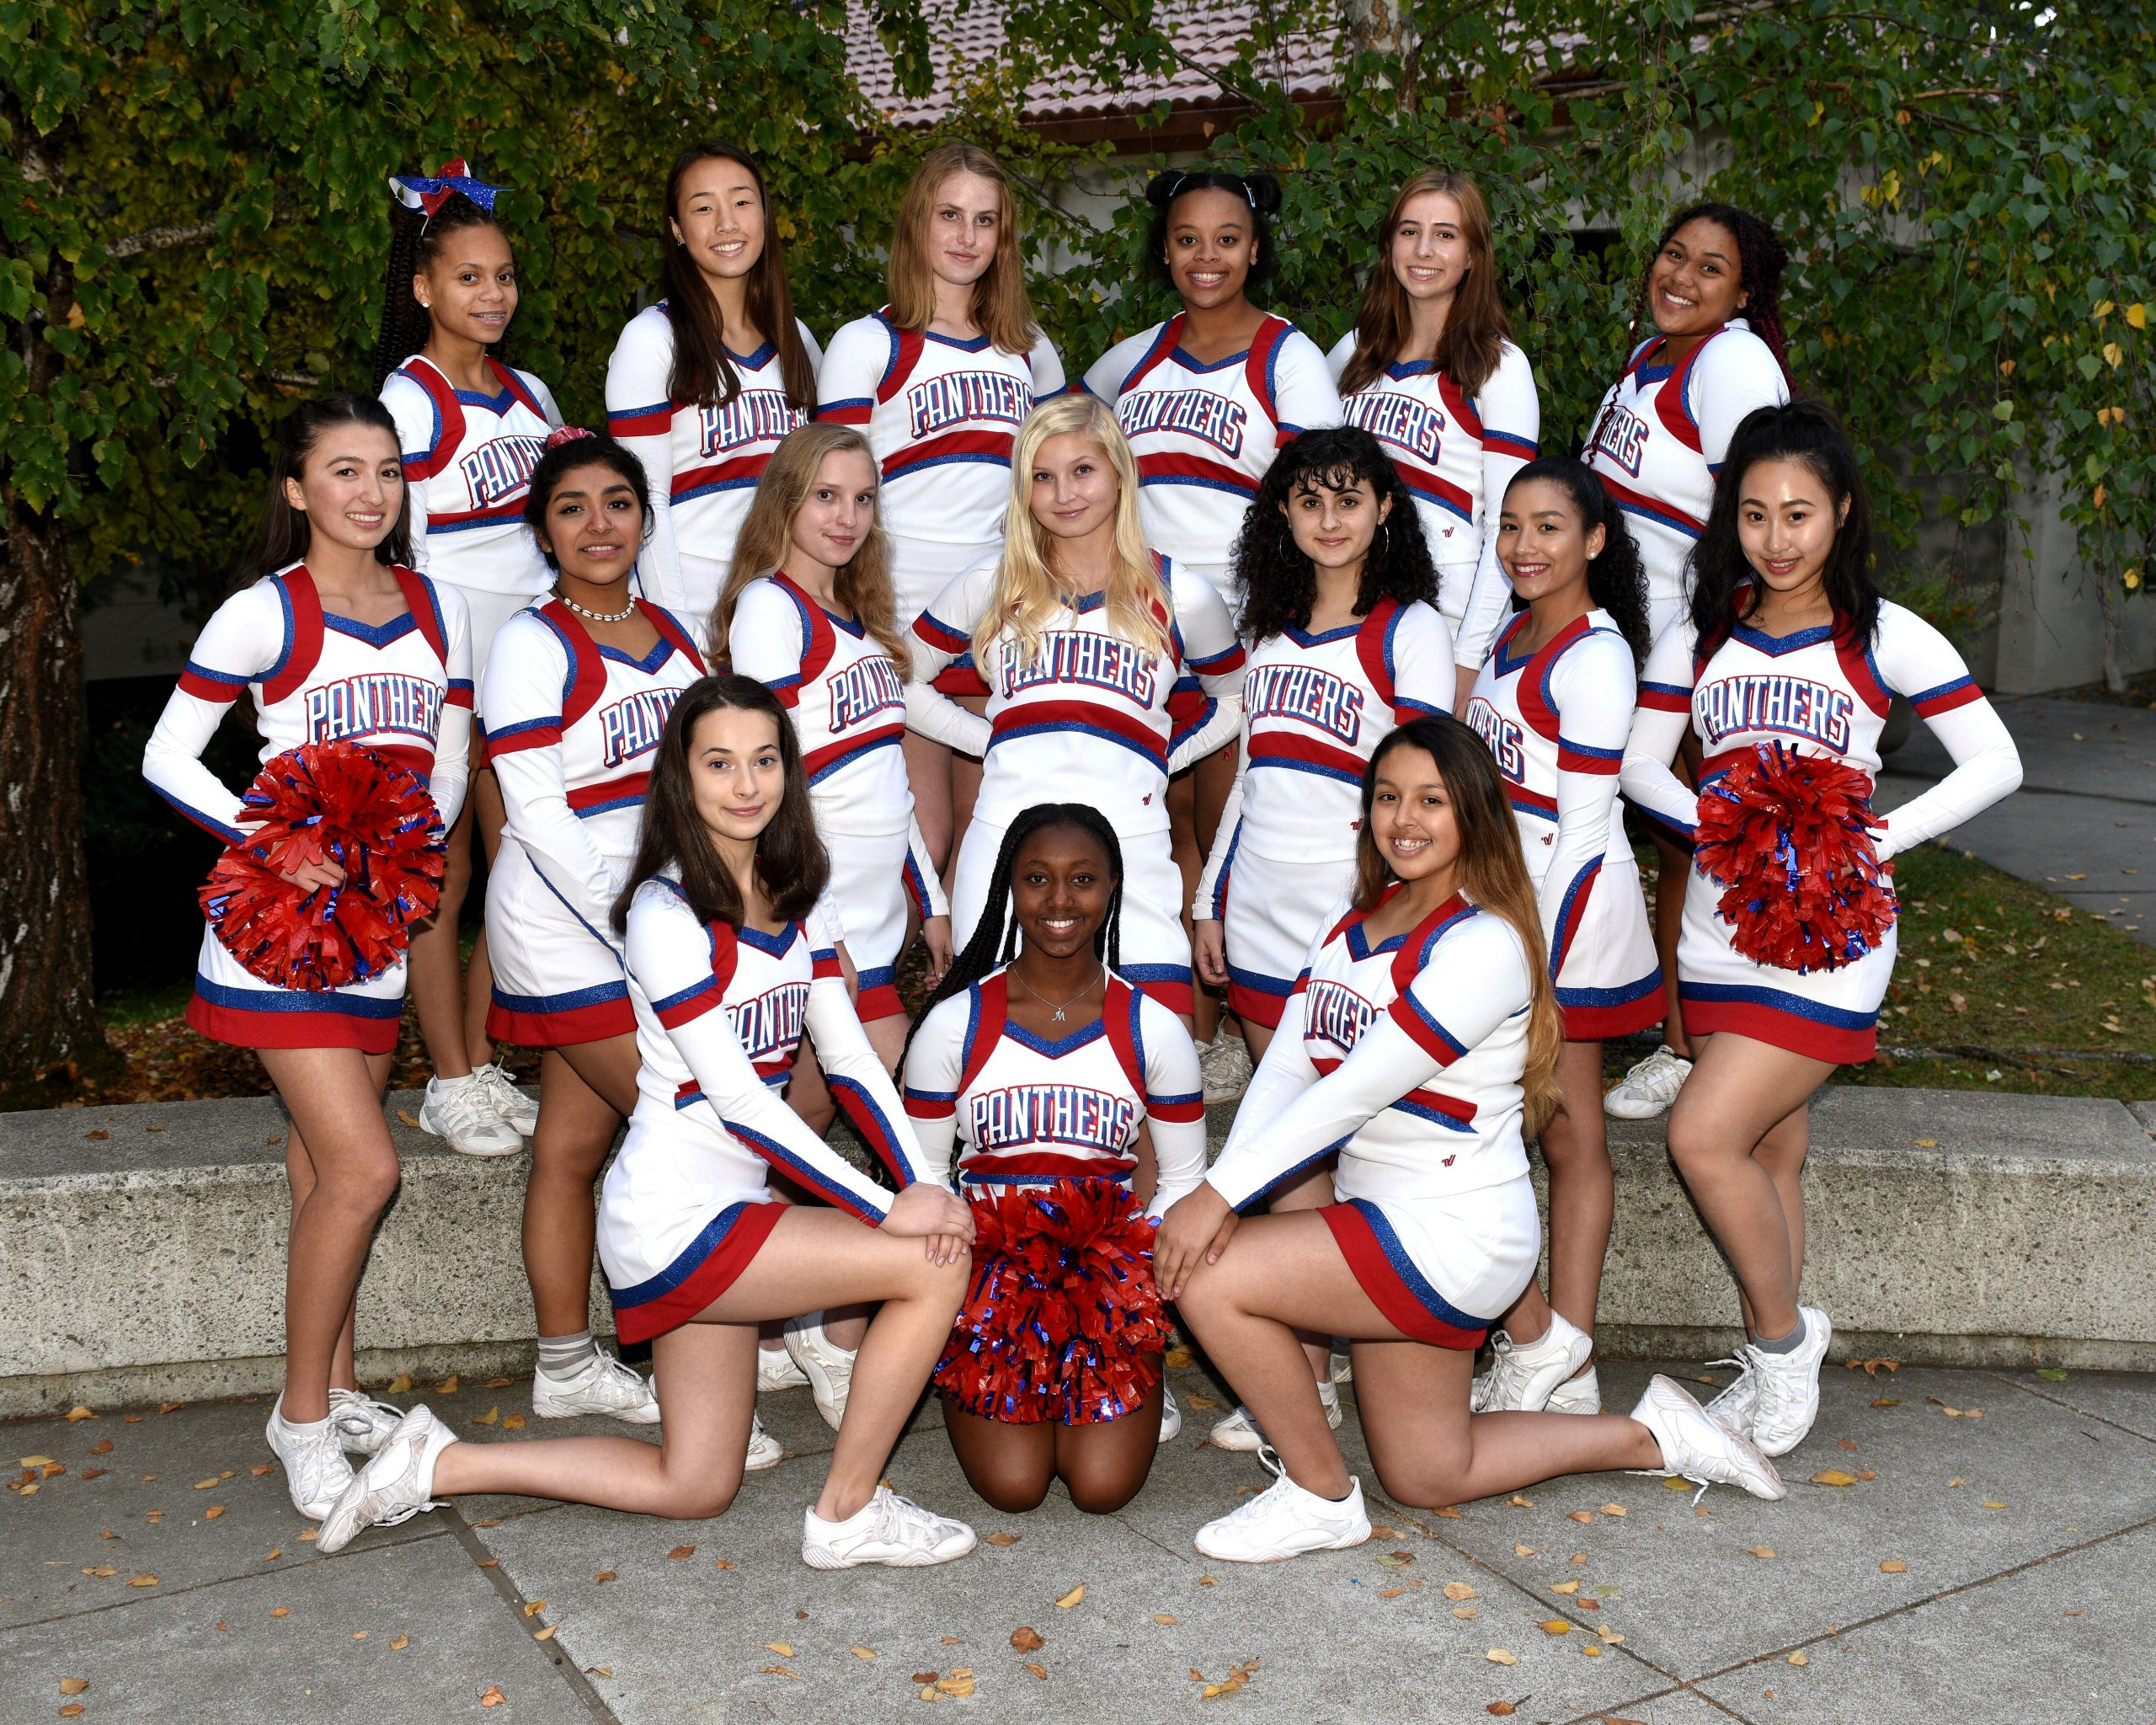 Cheerlading Team Photo